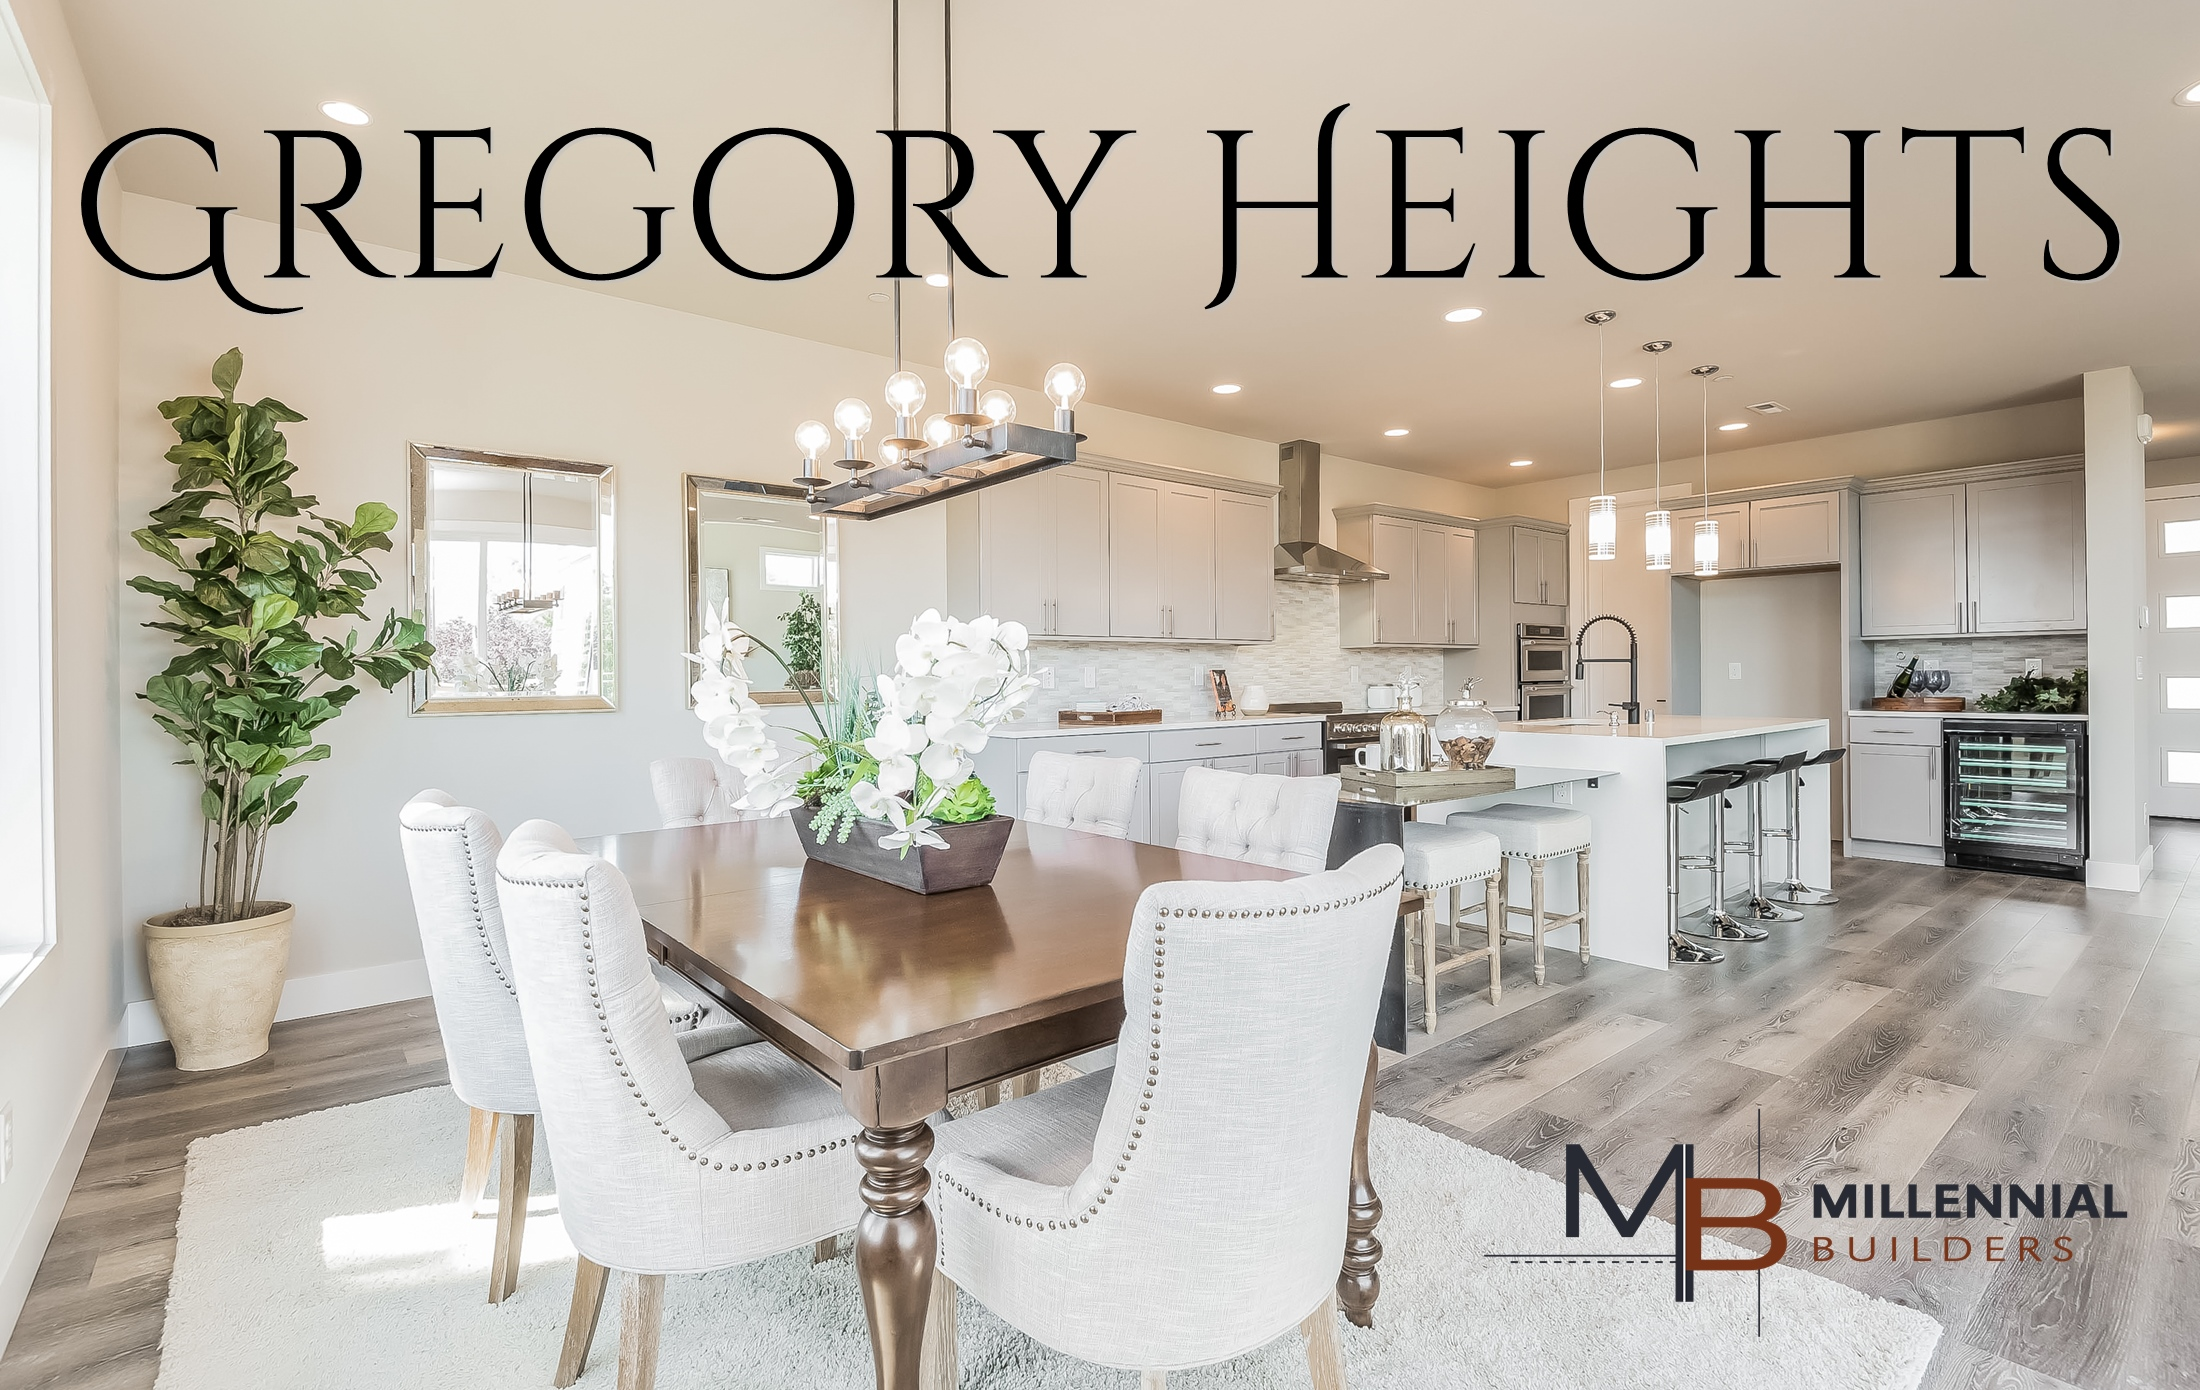 Gregory Heights Landing Page.jpg